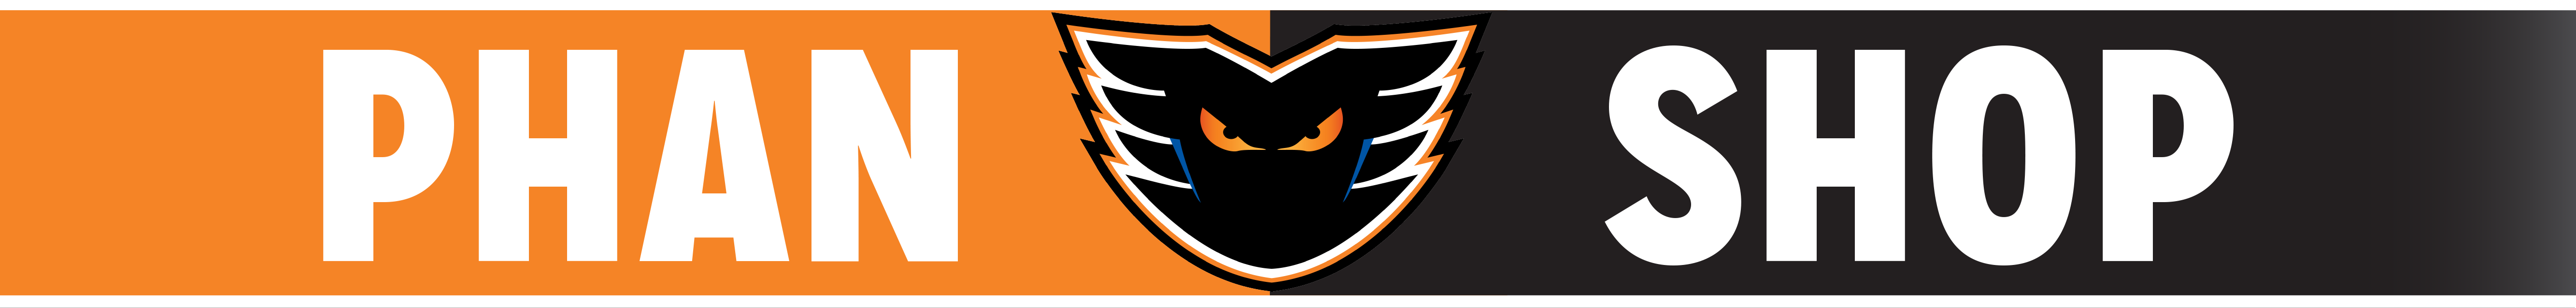 Lehigh Valley Phantoms Phan Shop Banner